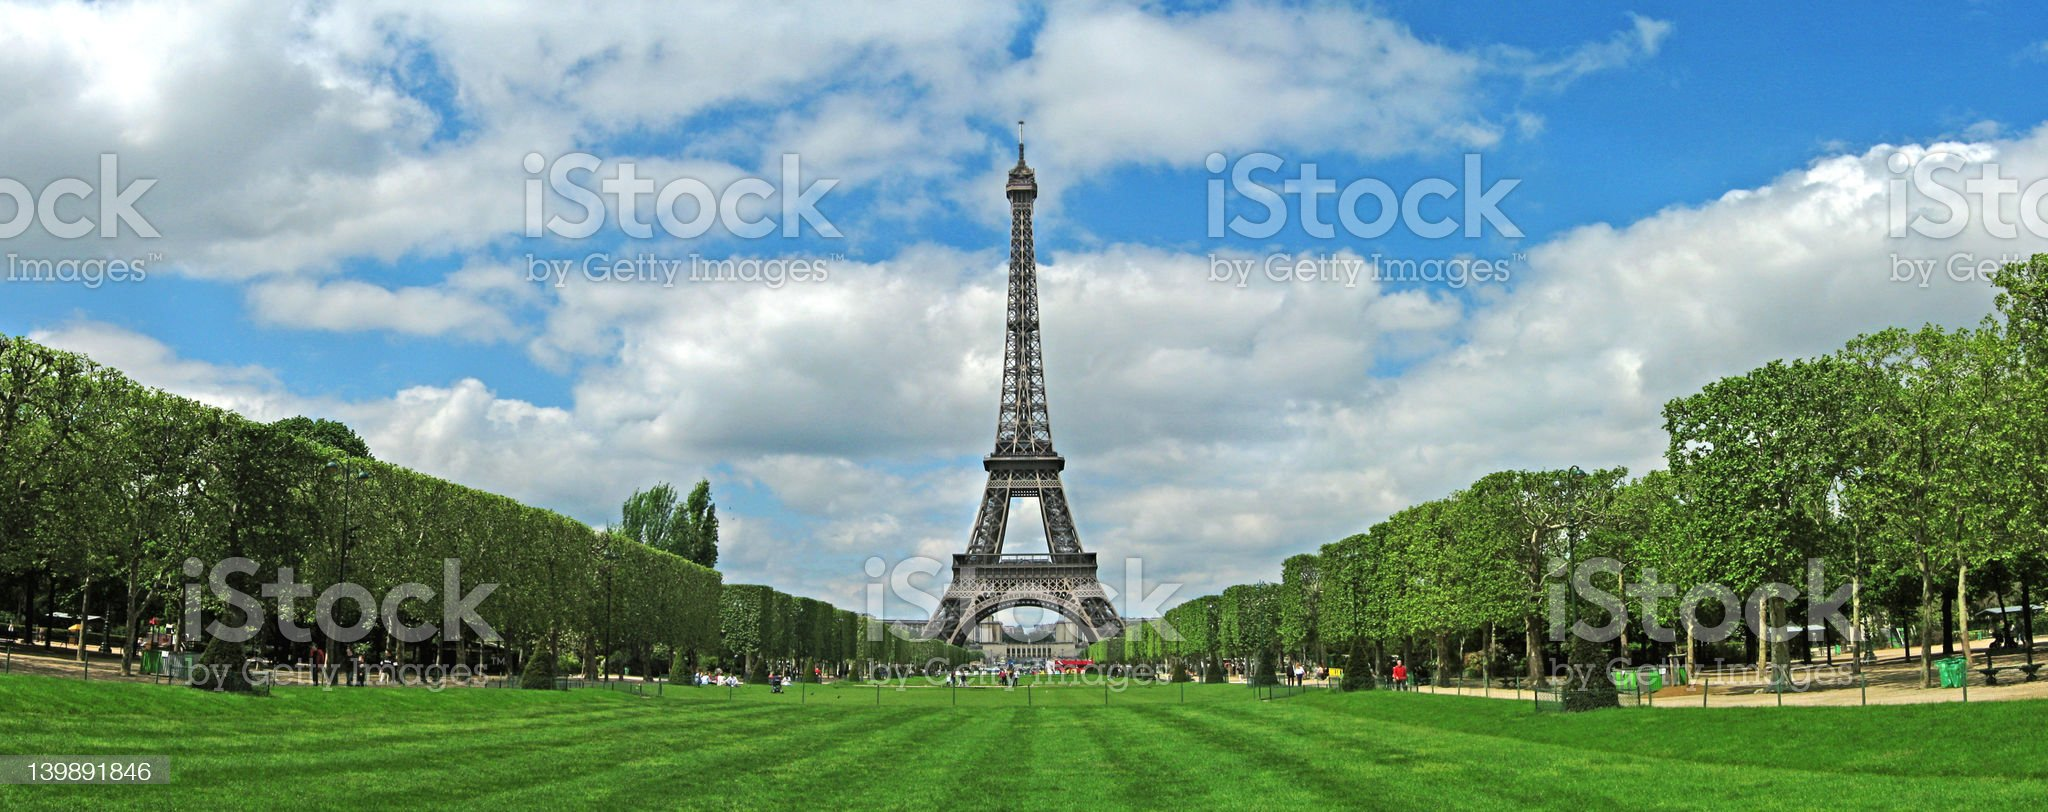 Eiffel Tower Panorama royalty-free stock photo